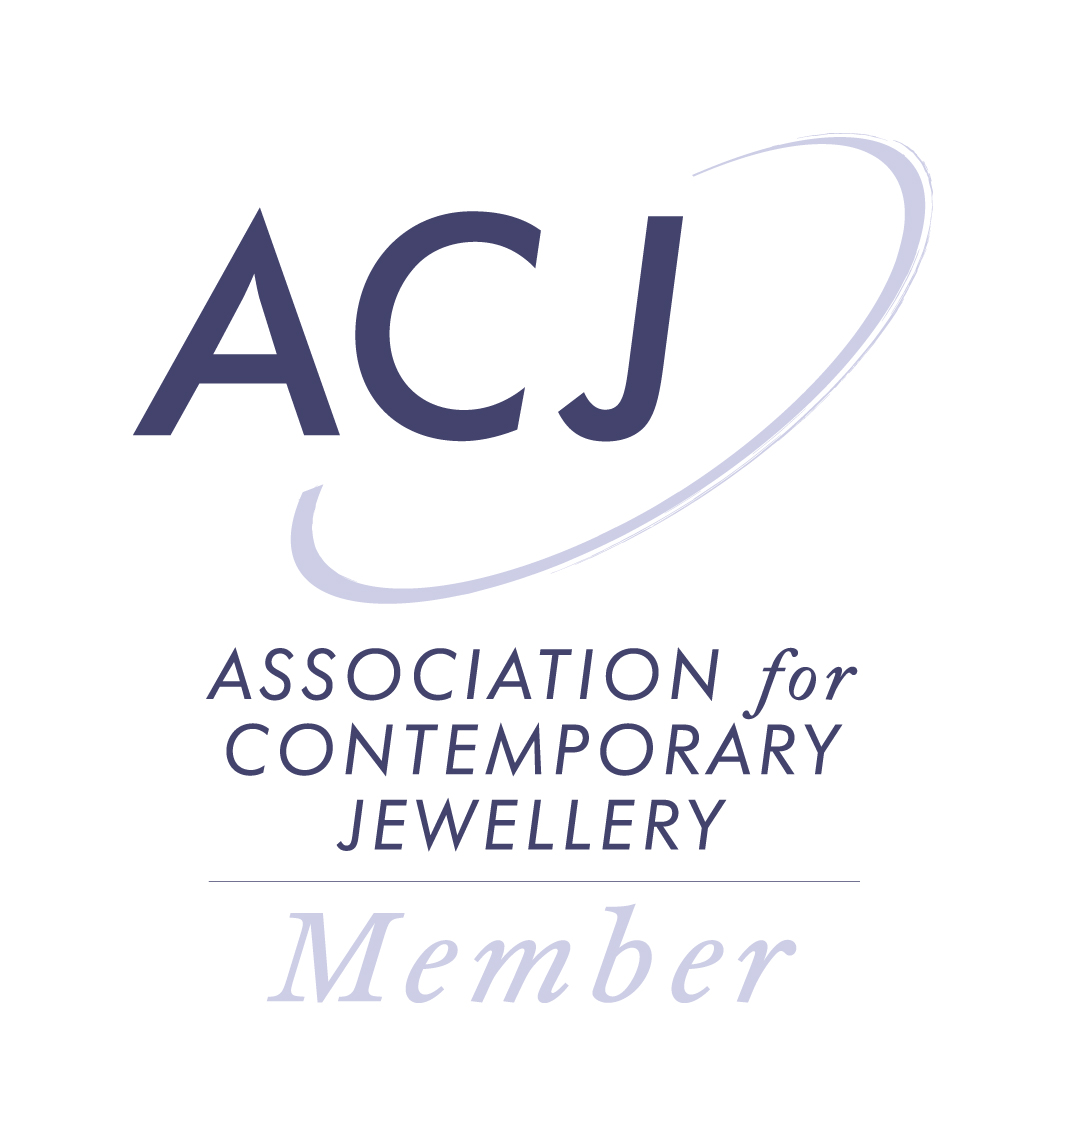 Association for Contemporary Jewellery